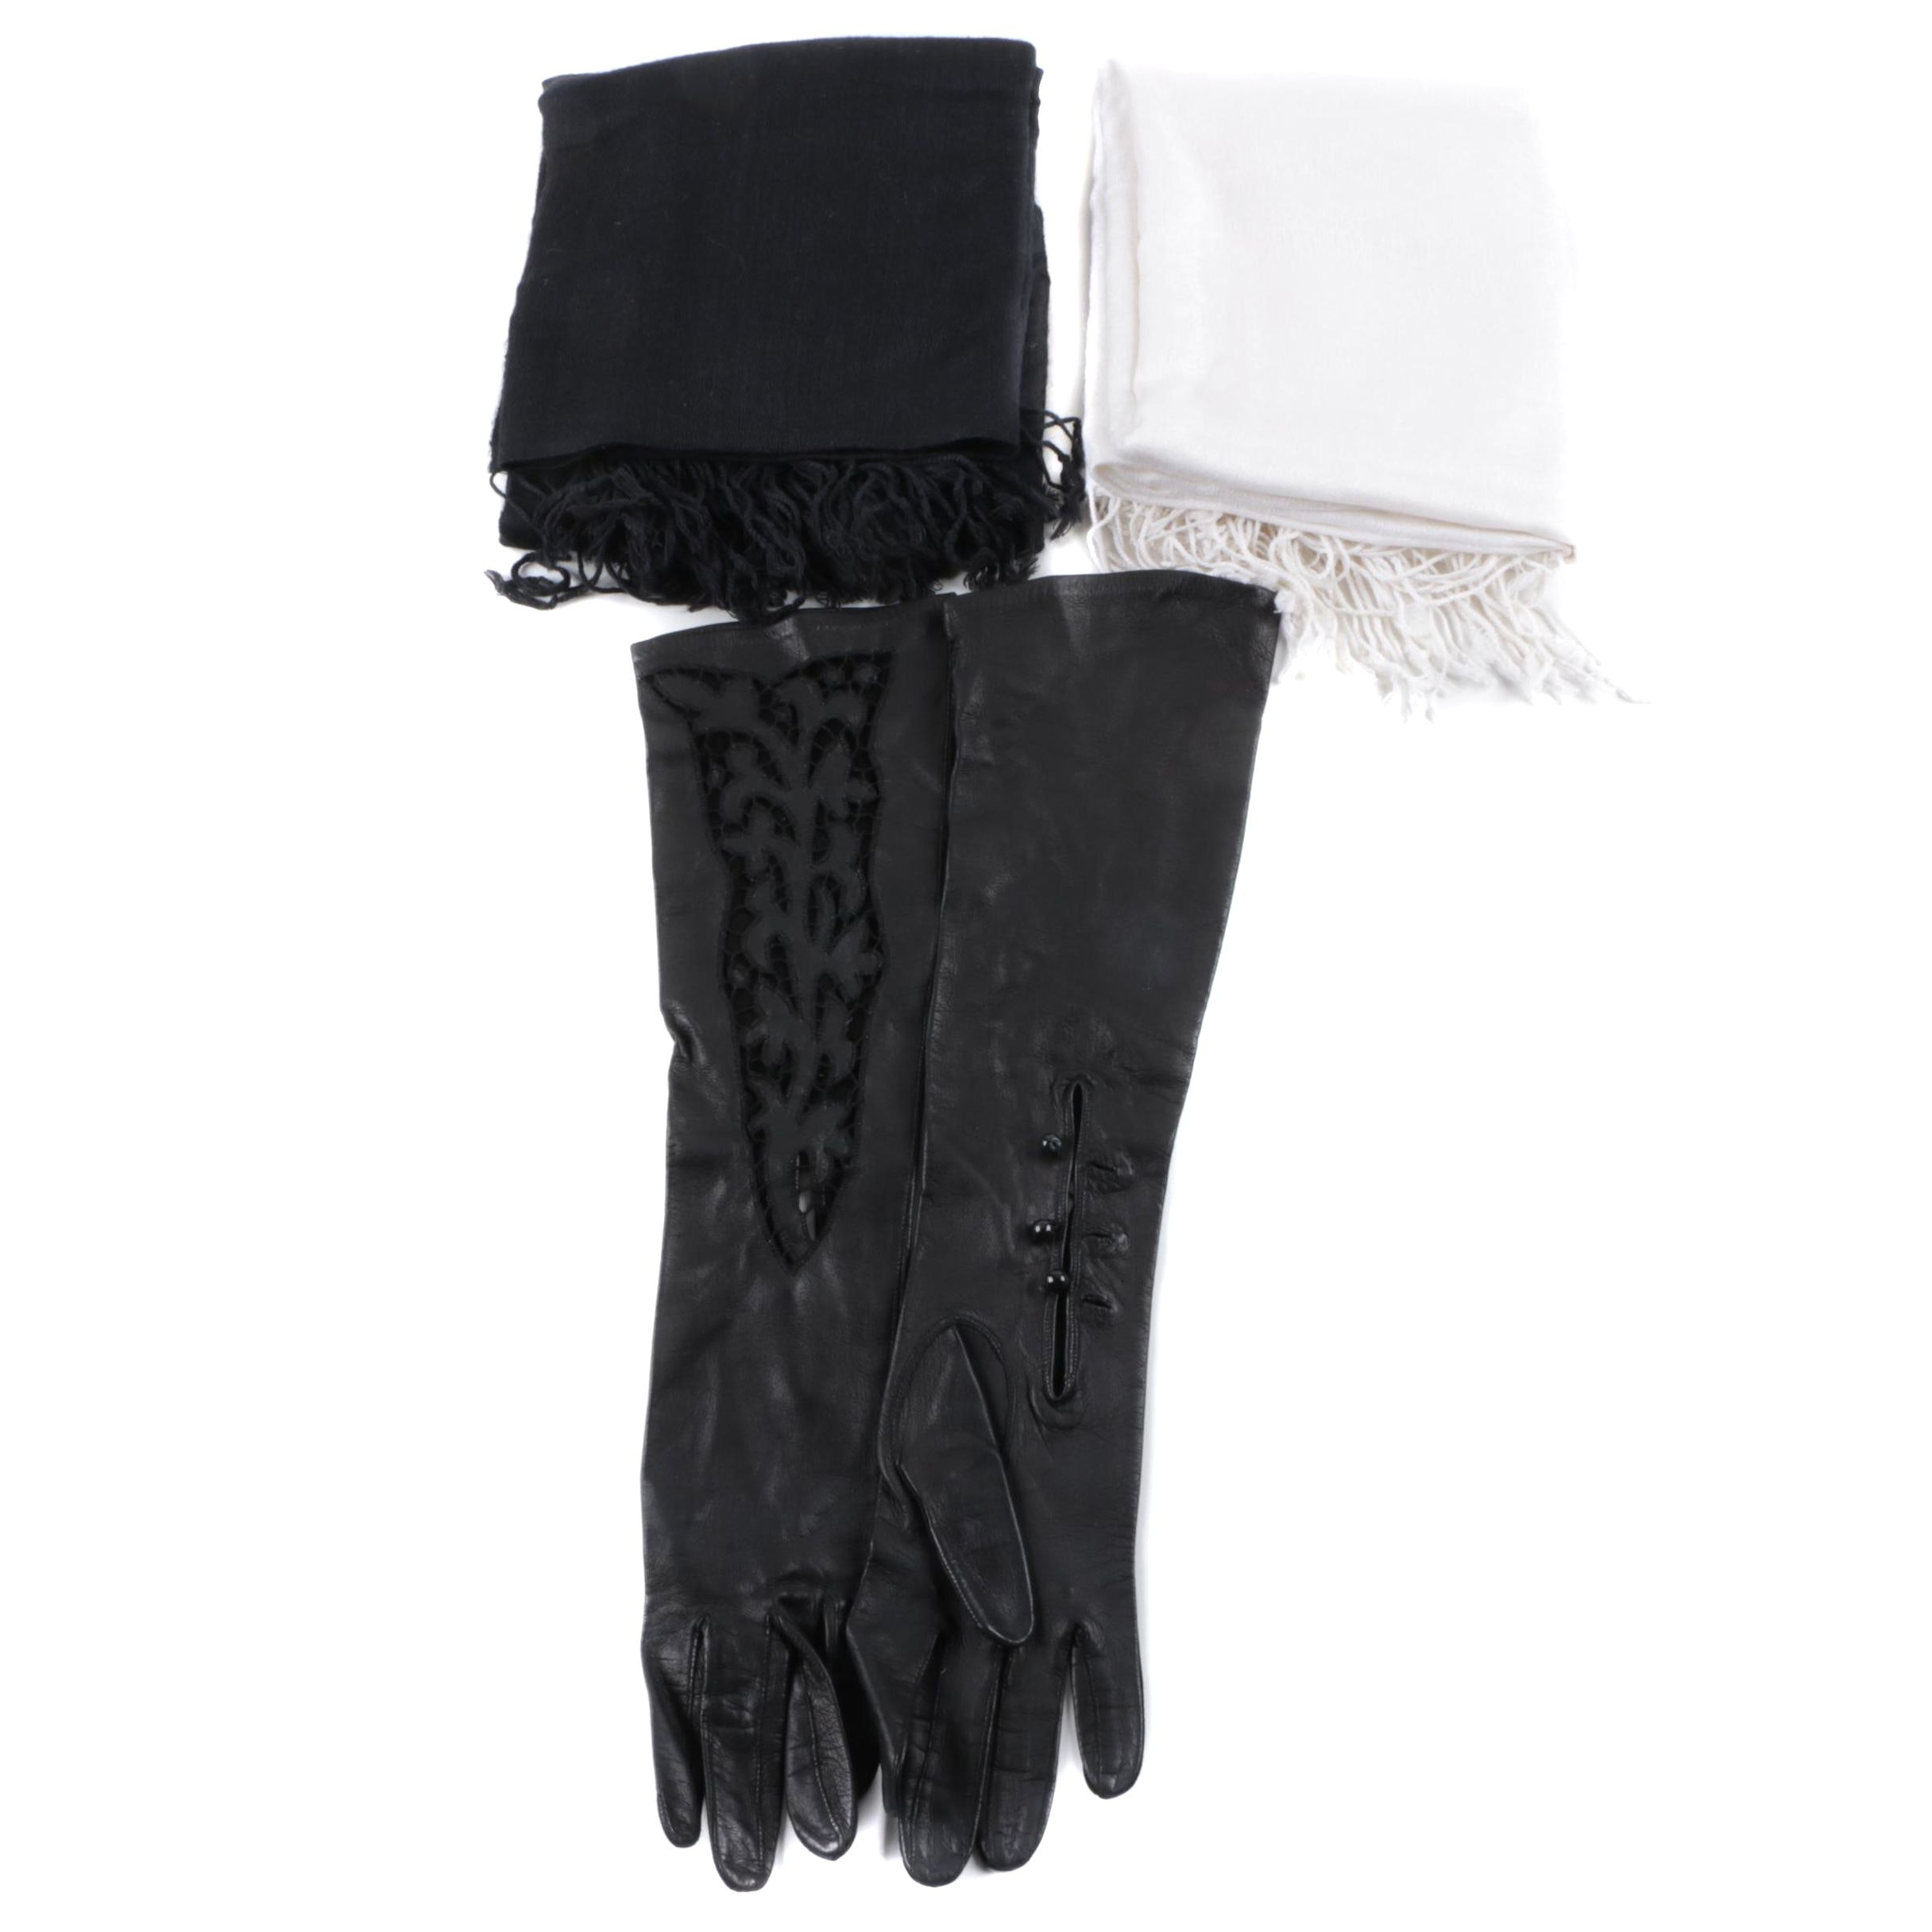 Pashmina Style Scarves and Leather Gloves